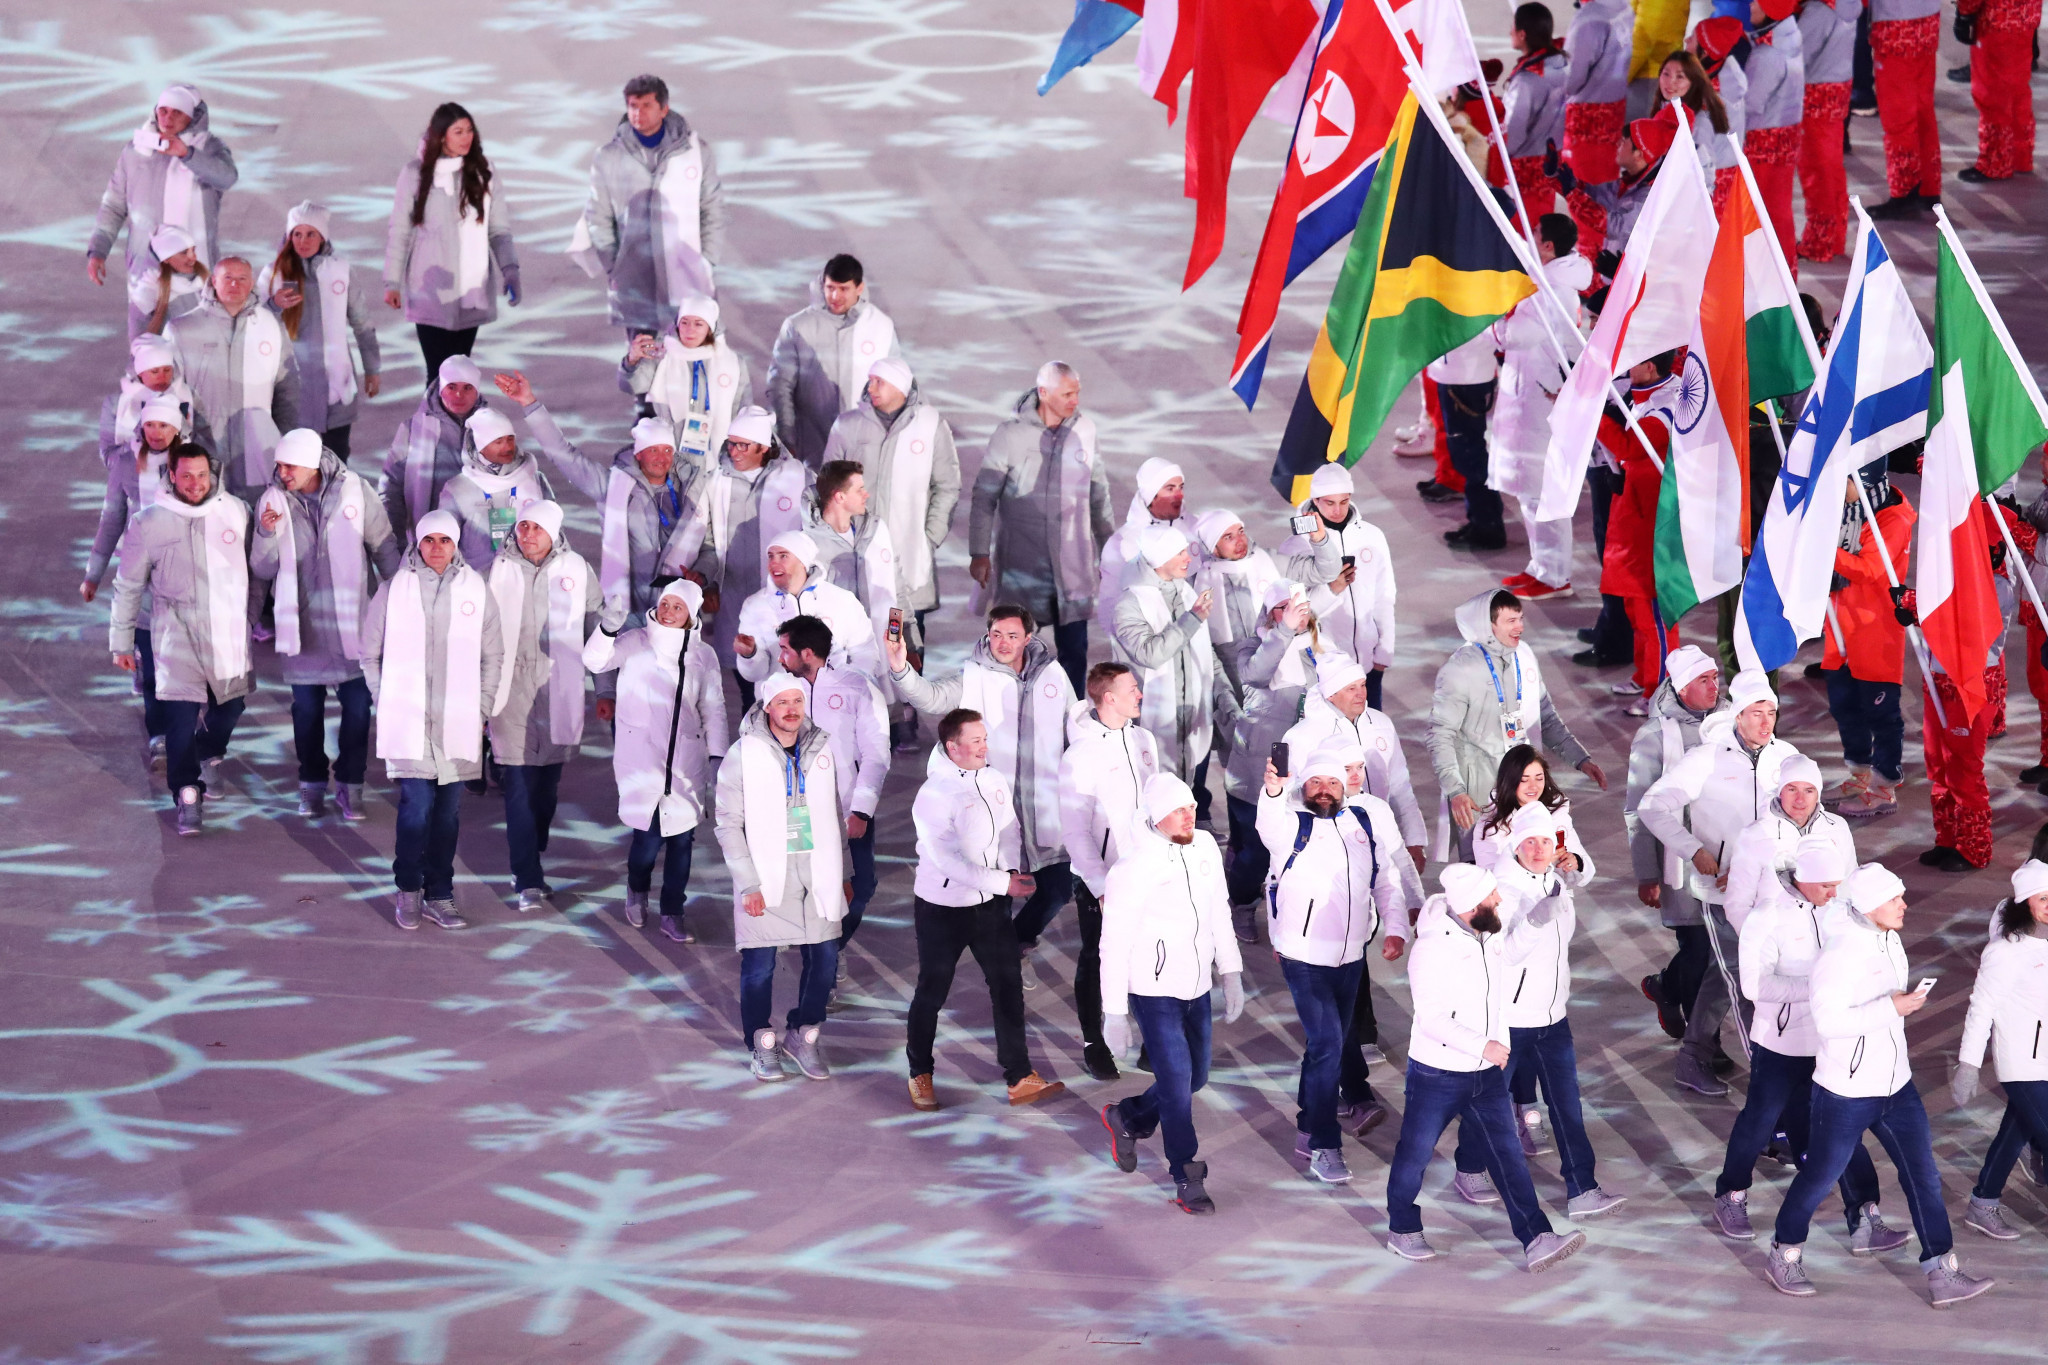 IOC decision to lift ban on Russia after Pyeongchang 2018 provokes widespread anger